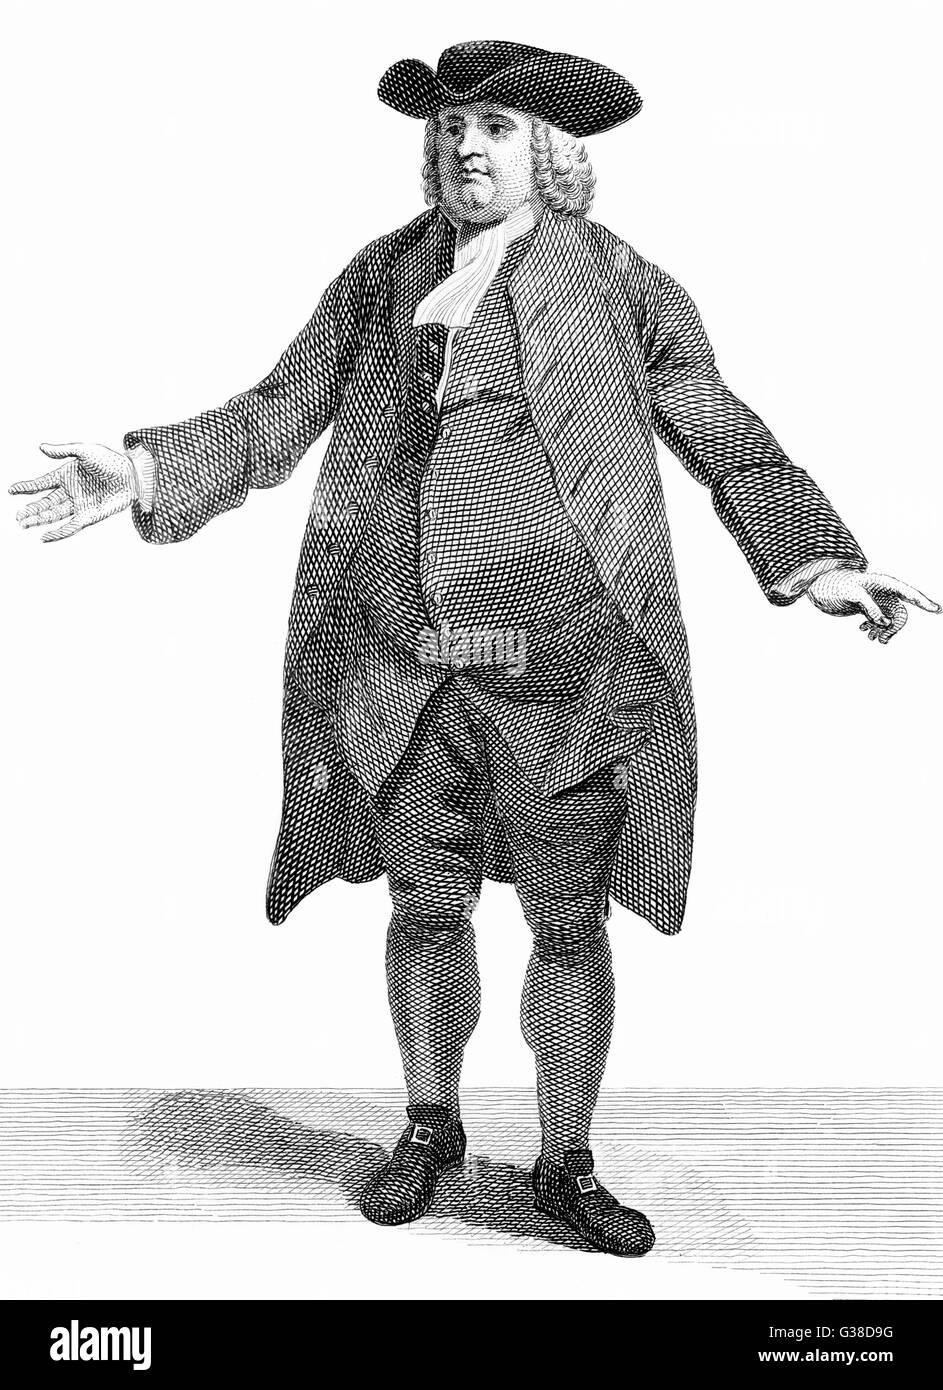 WILLIAM PENN  English religious reformer and  colonialist       Date: 1644 - 1718 - Stock Image